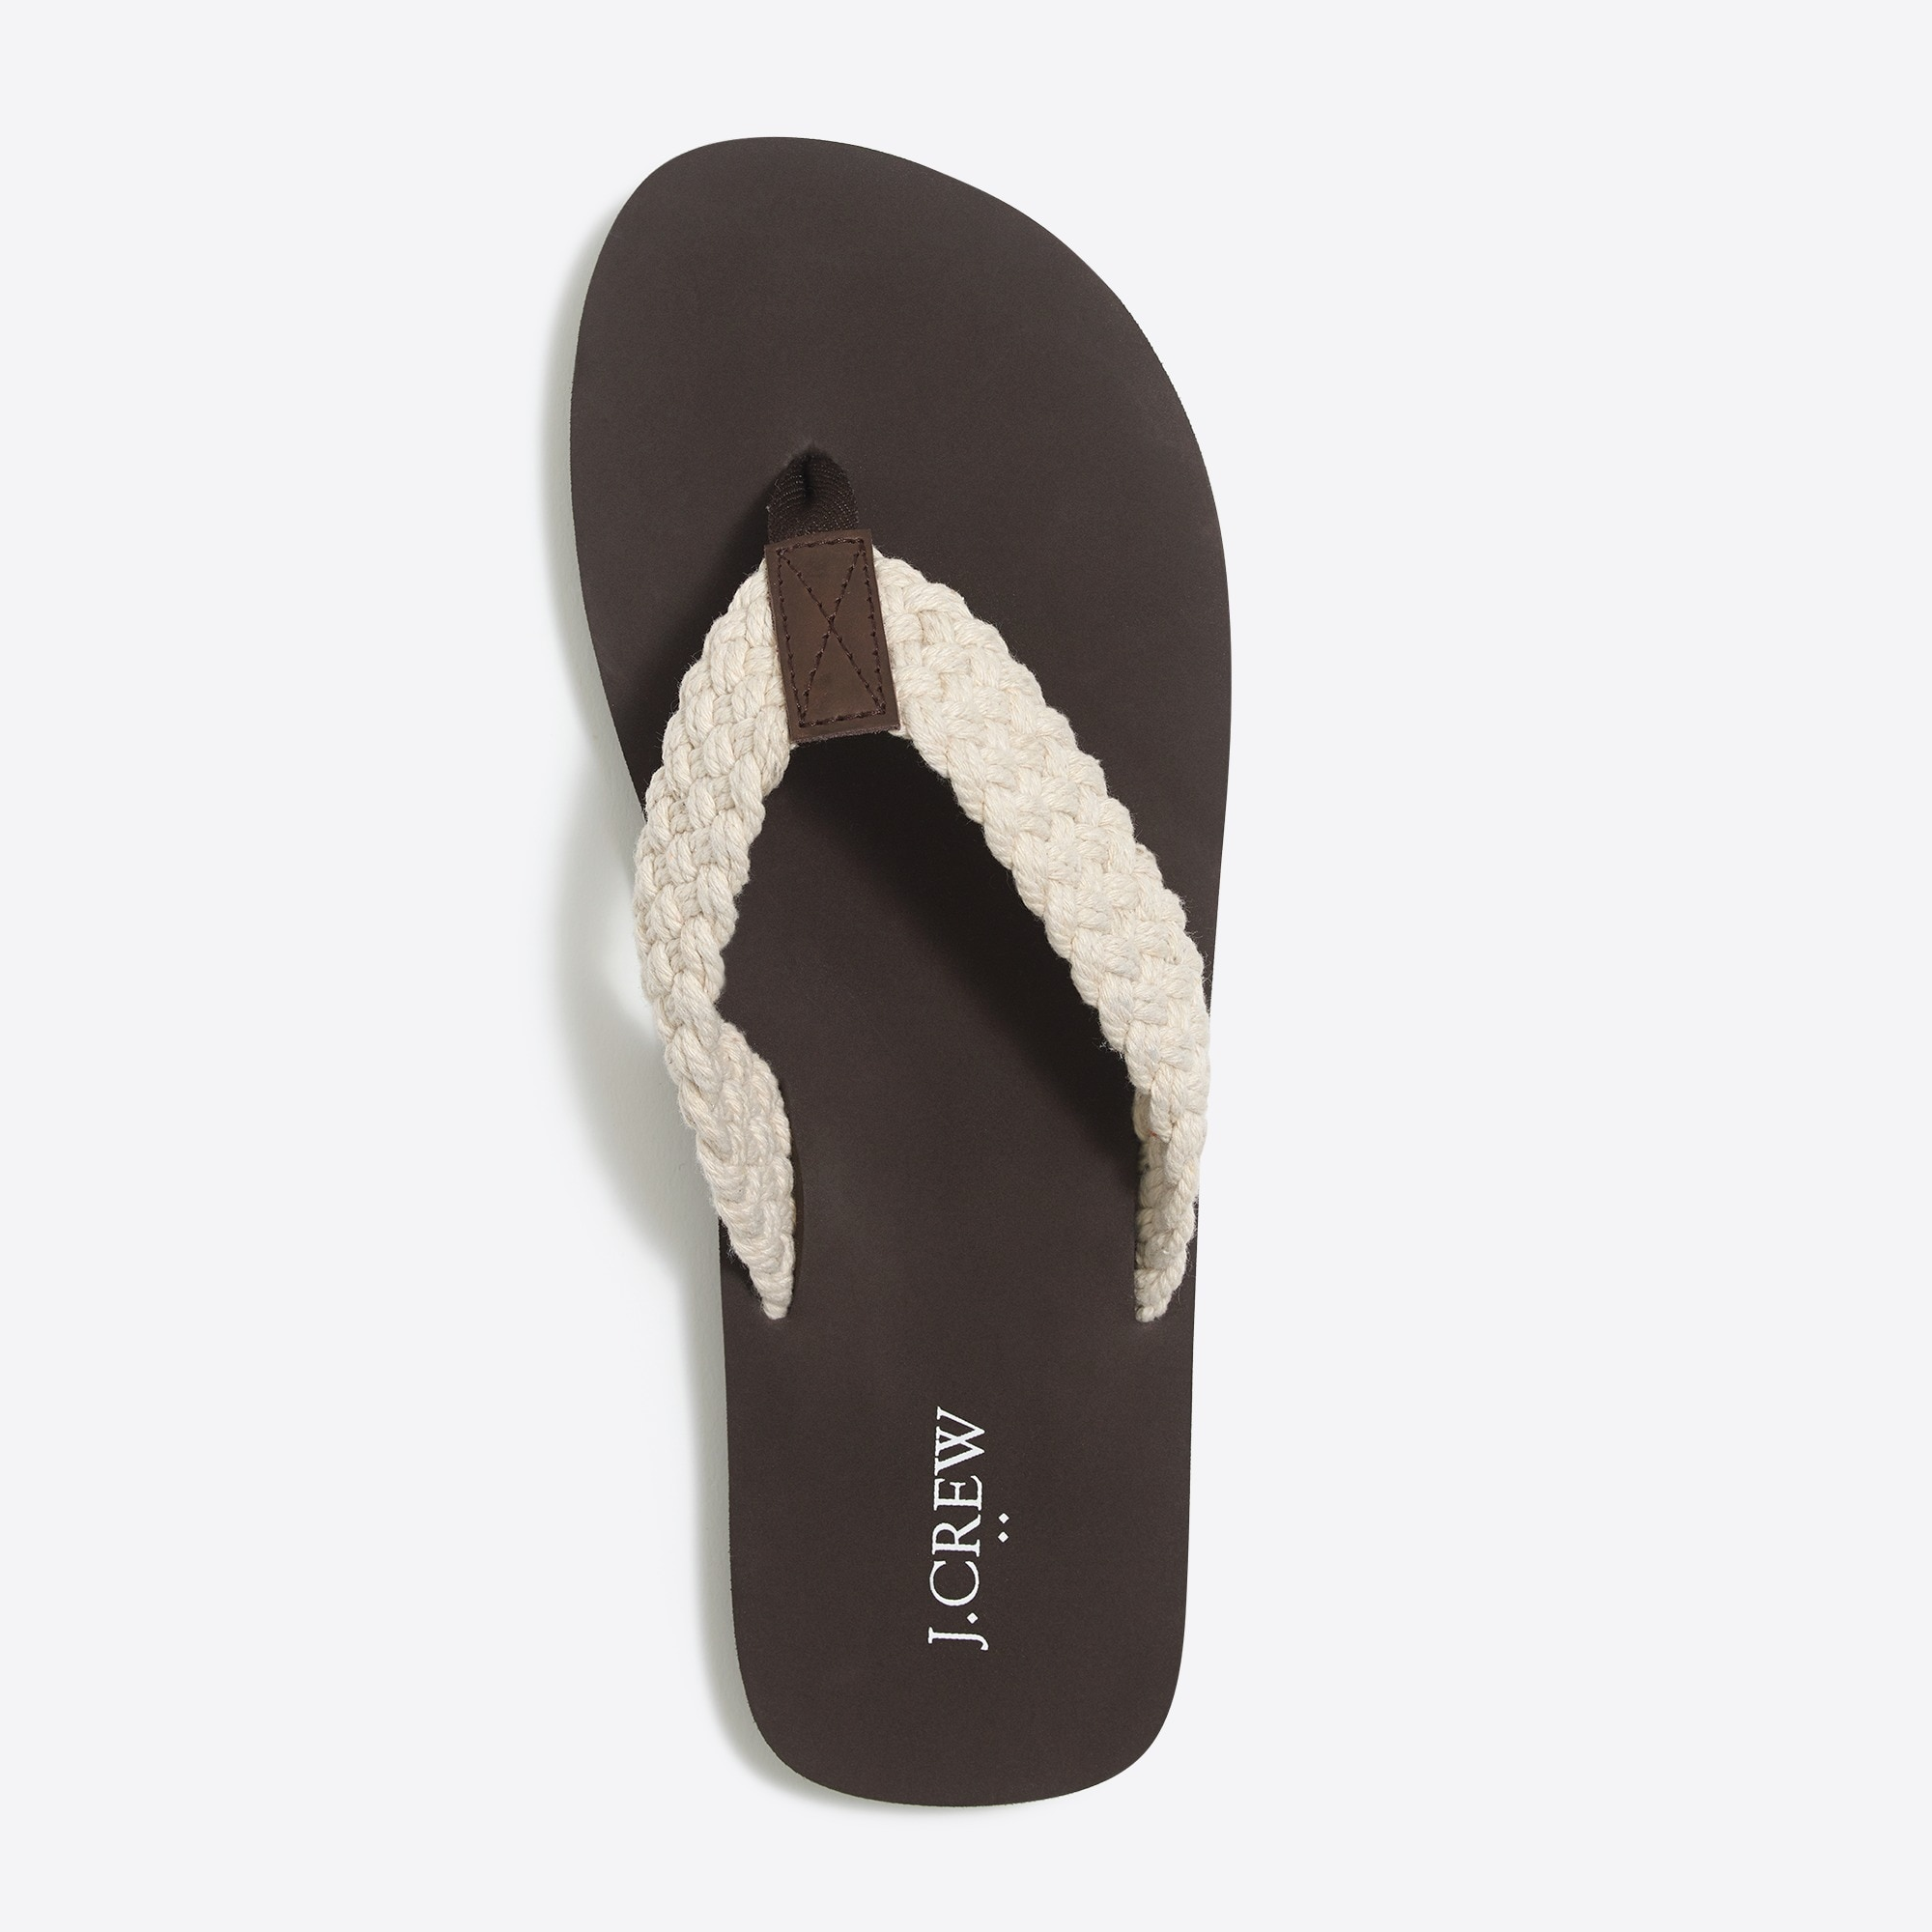 Image 2 for Cotton braided flip-flops